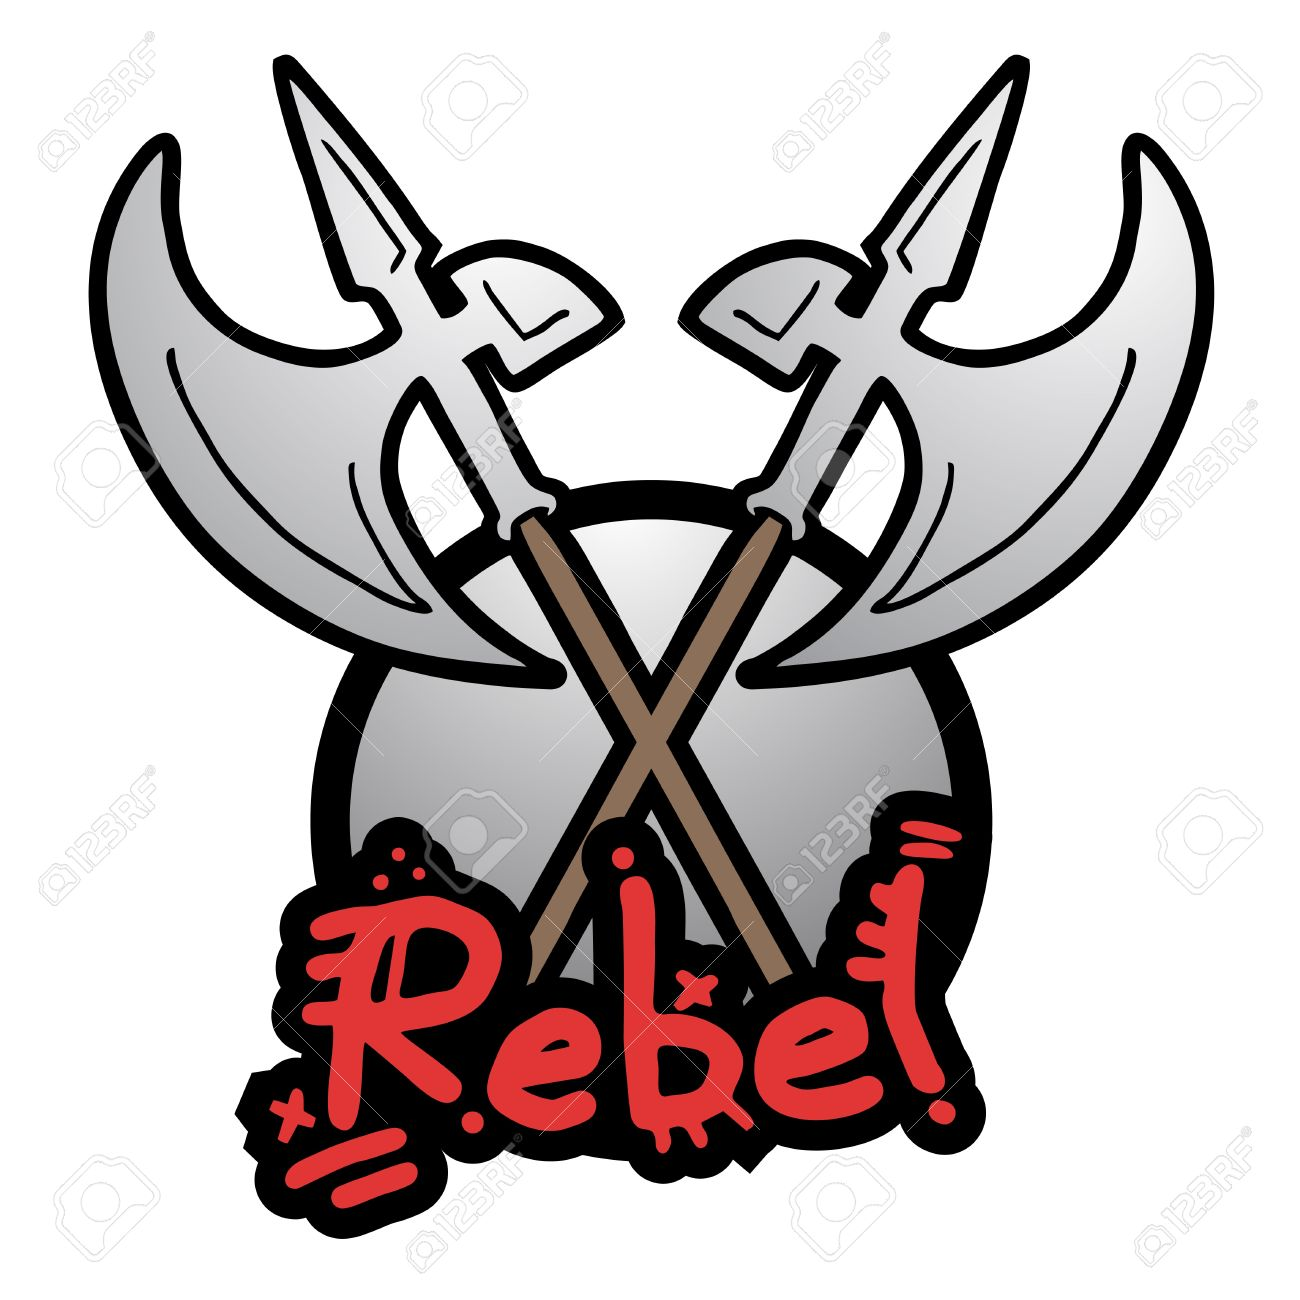 Rebel Army Royalty Free Cliparts, Vectors, And Stock Illustration.